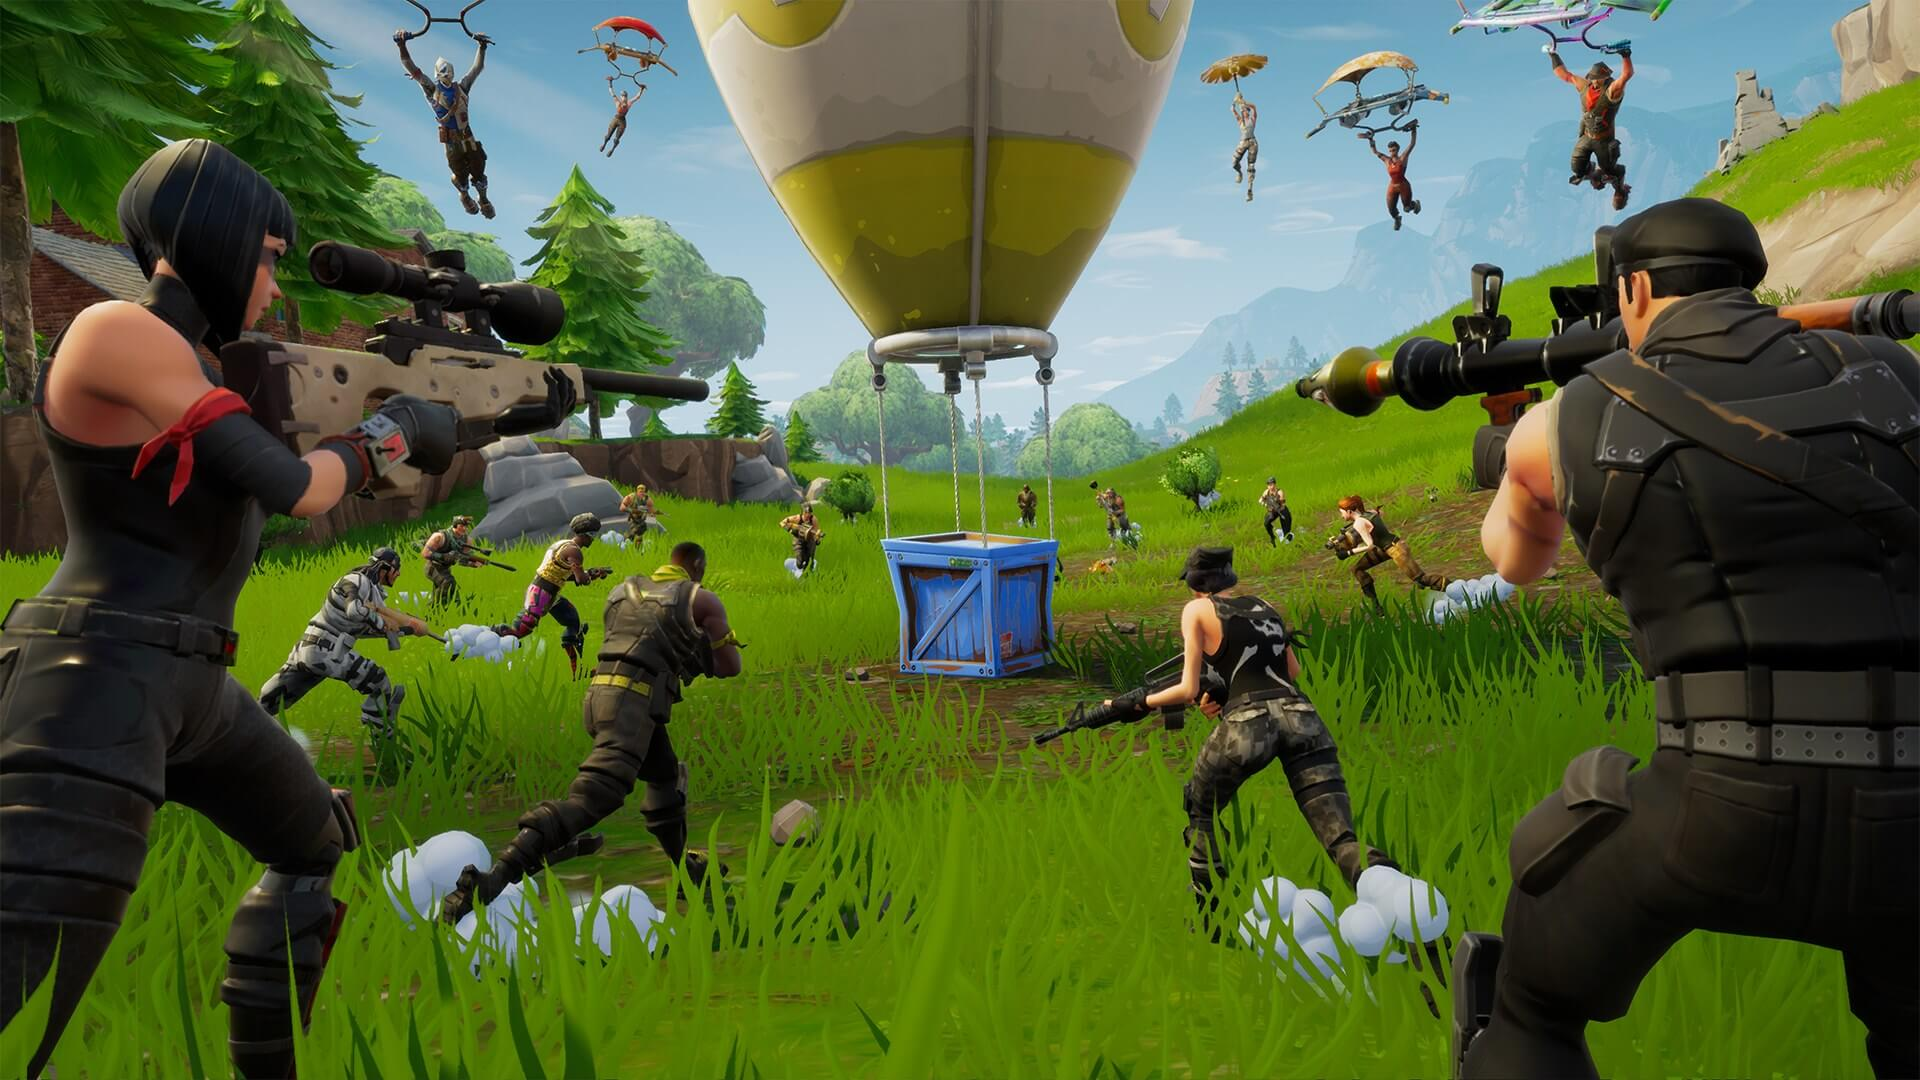 Tim Sweeney addresses misconceptions regarding the Epic Games Store